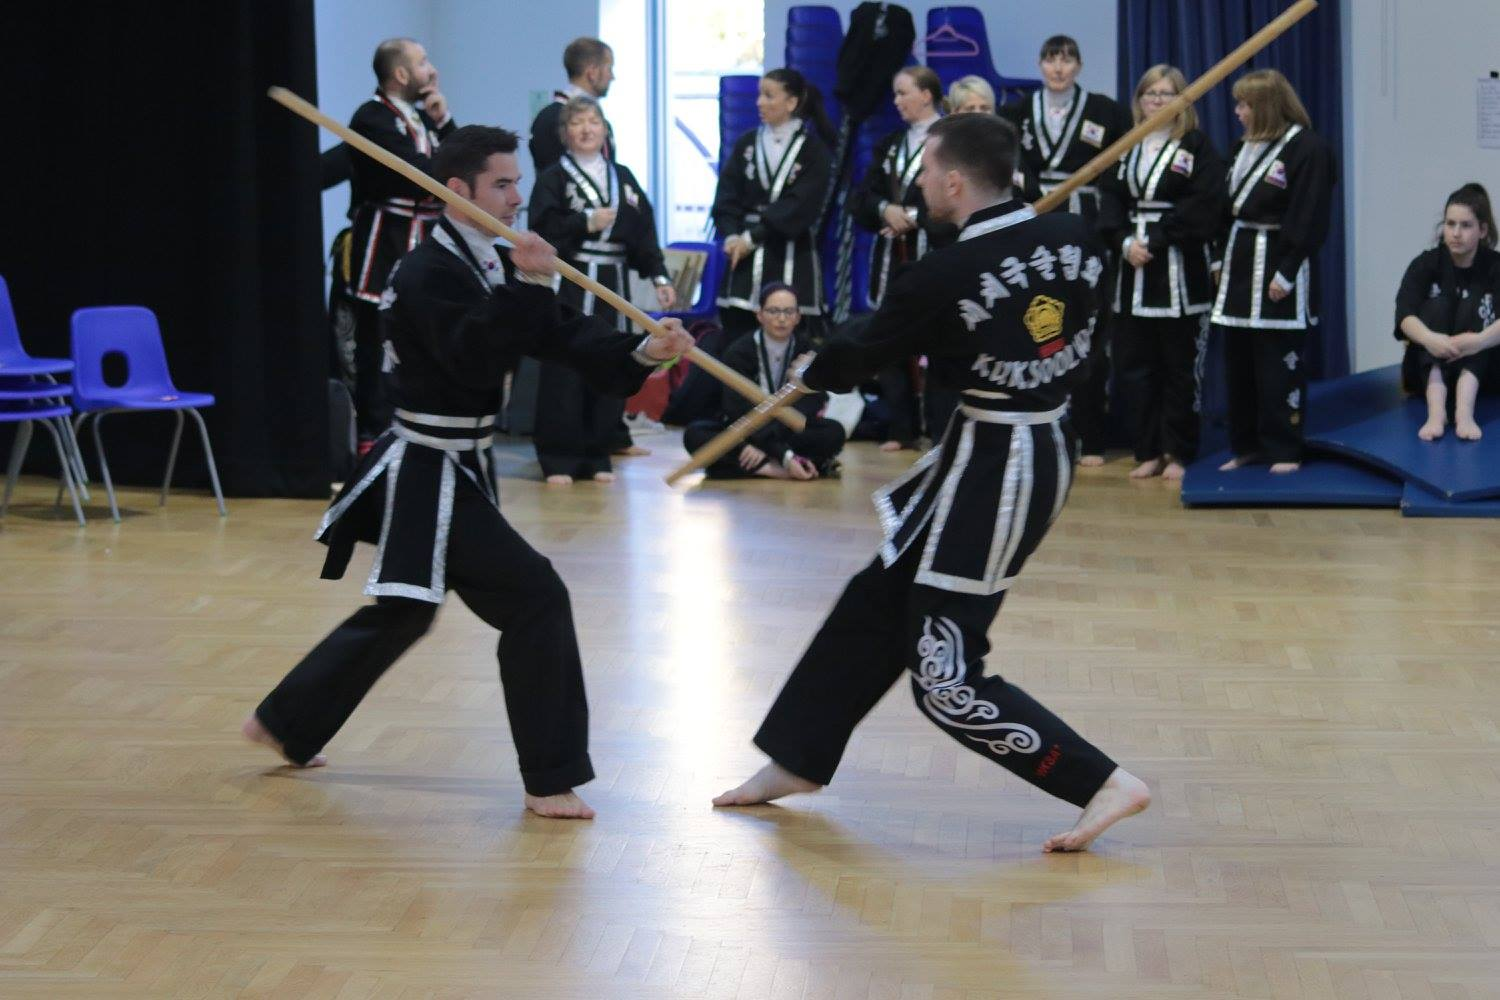 kuk sool won of perth staff sparring